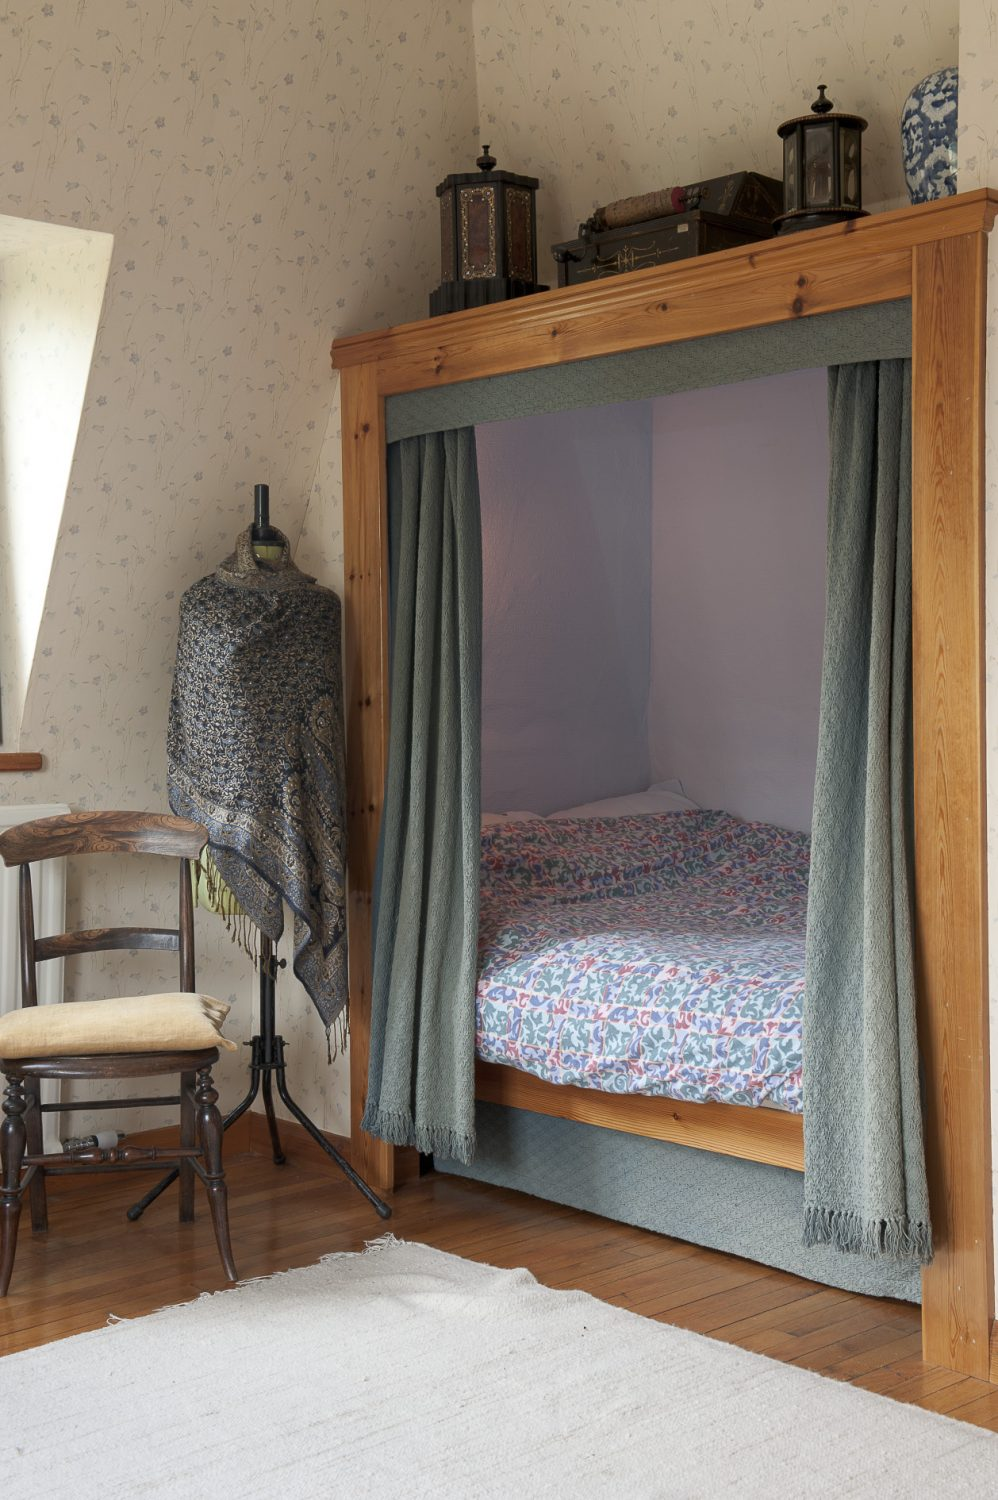 A double bed is tucked secretly behind a pair of curtains